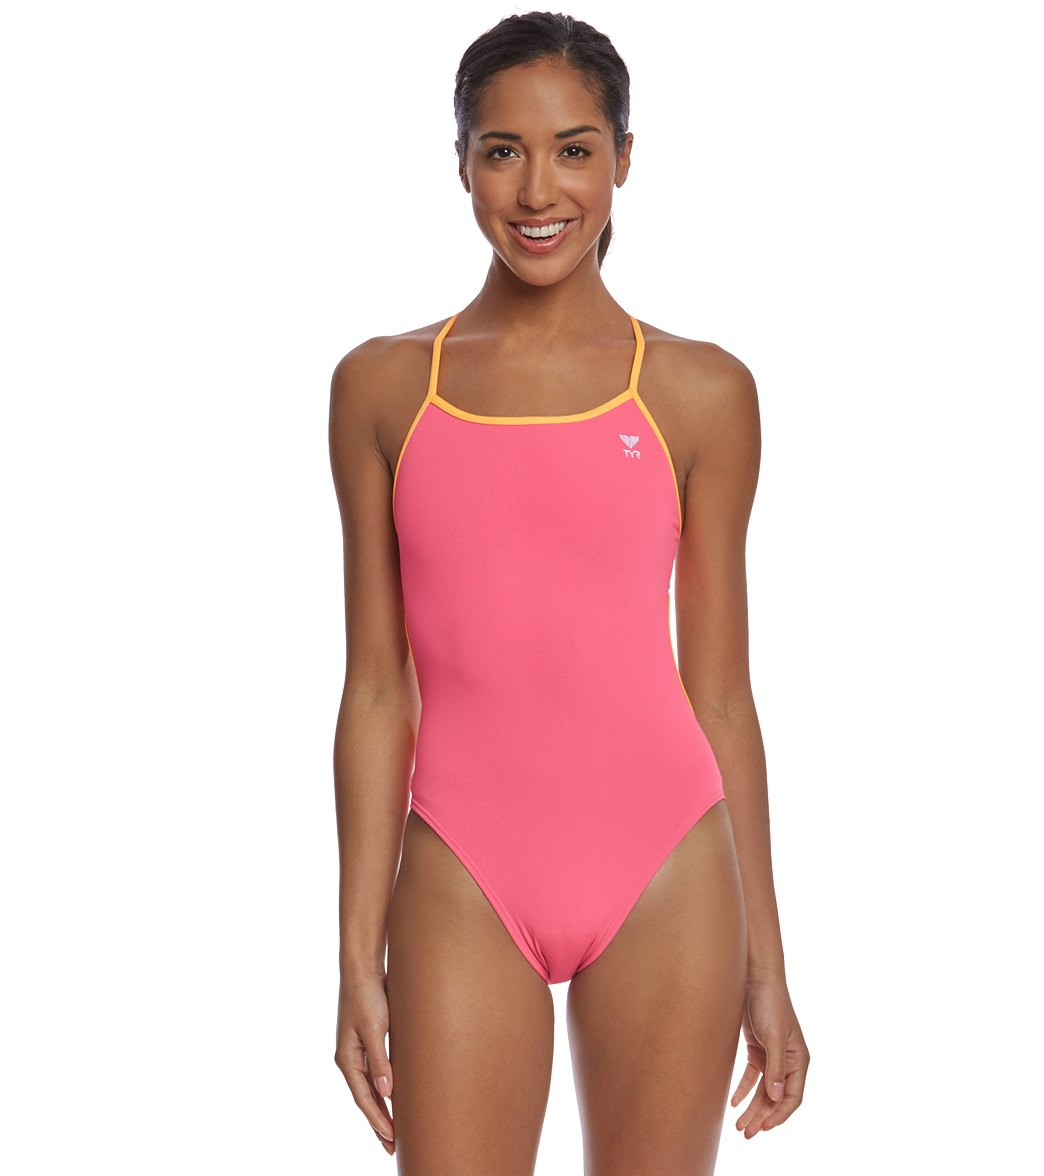 fbaacc4af3efc TYR Women s Solid Trinityfit One Piece Swimsuit at SwimOutlet.com - Free  Shipping